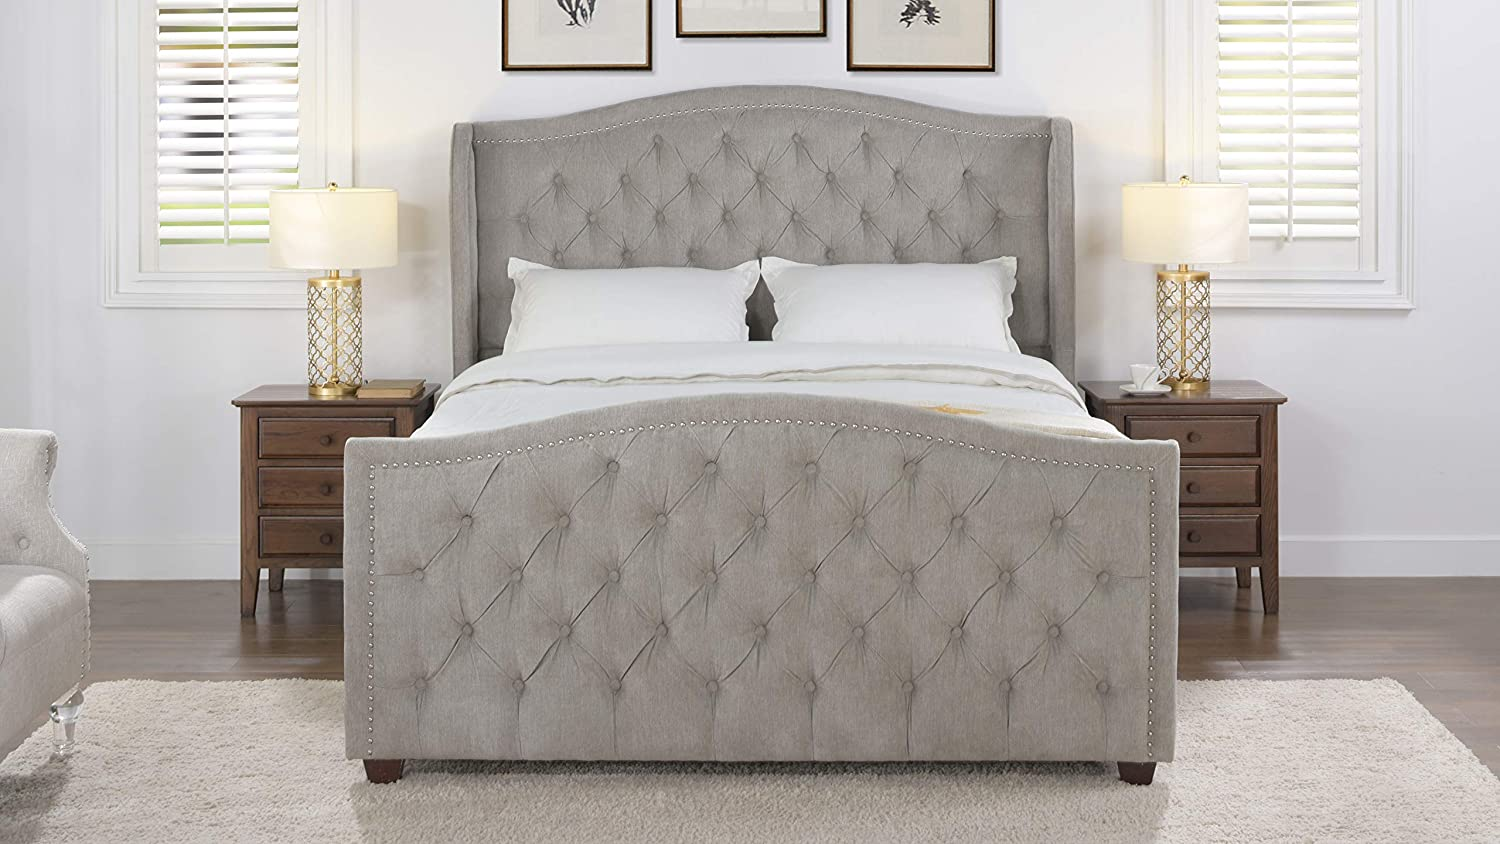 Jennifer Taylor Home Marcella Collection Queen Wingback Tufted Hand-Applied Nail Heads Upholstered Bed, Silver Grey